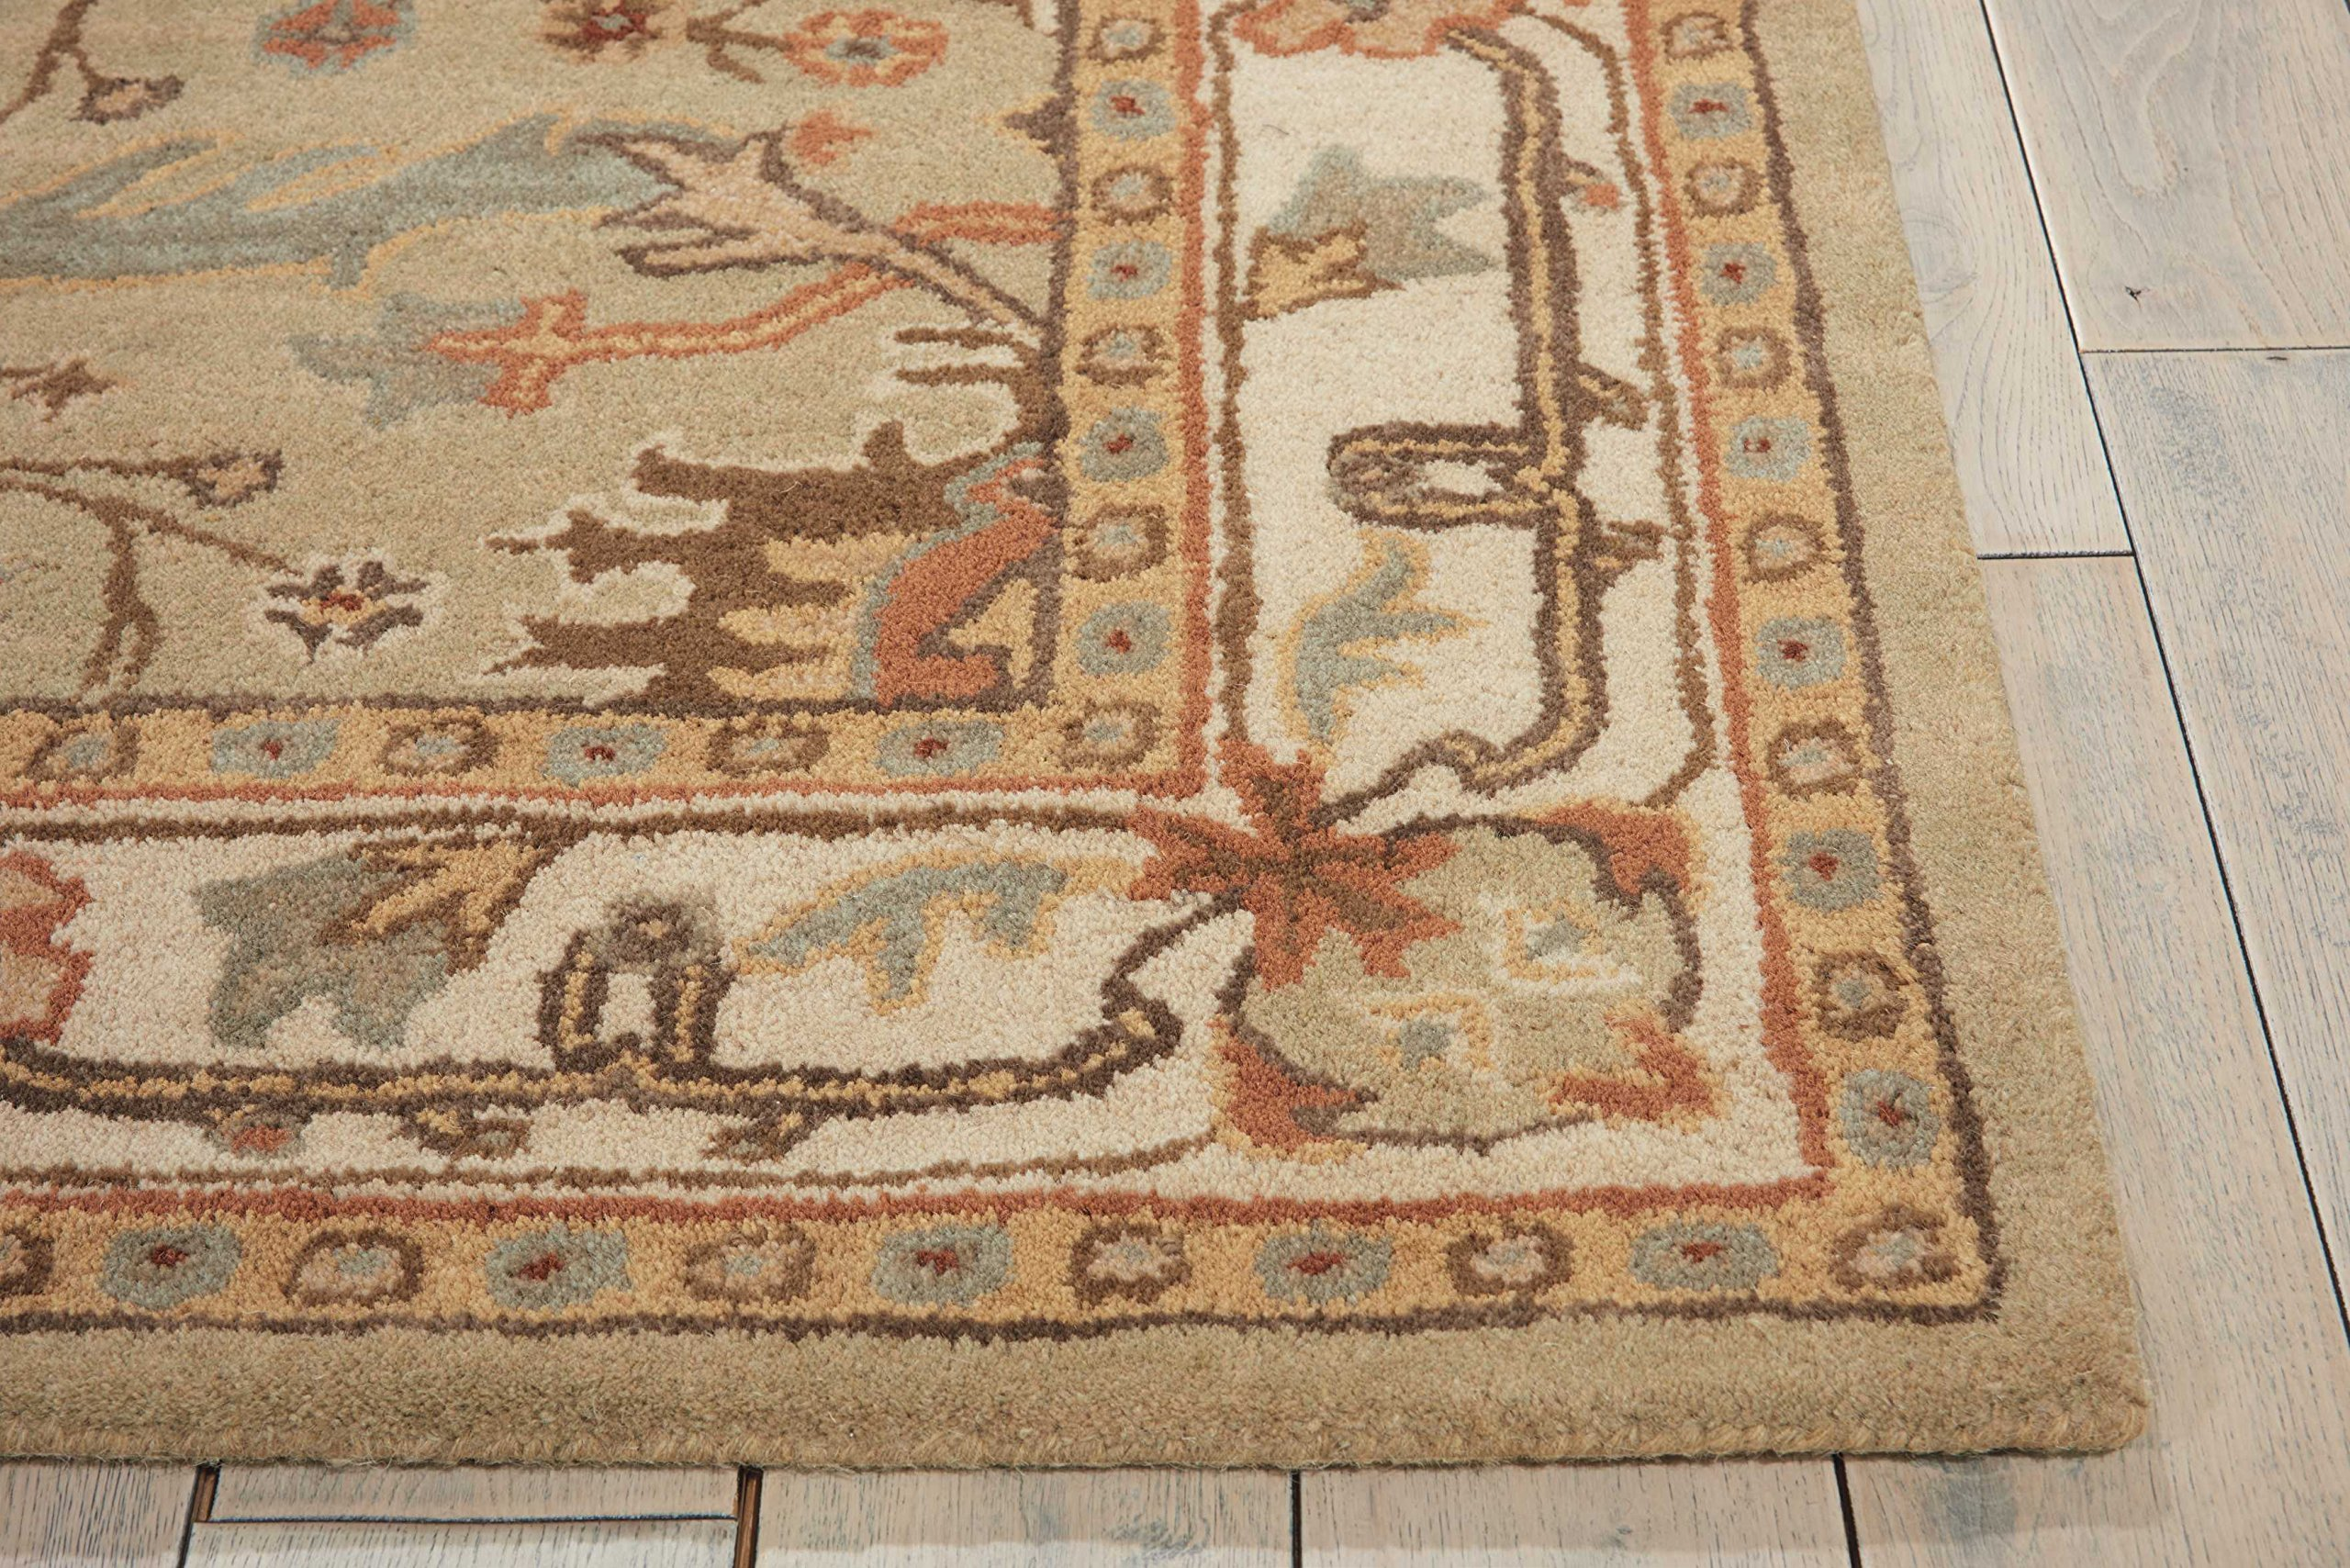 Nourison India House (IH76) Sage Rectangle Area Rug, 2-Feet 6-Inches by 4-Feet (2'6'' x 4') by Nourison (Image #5)